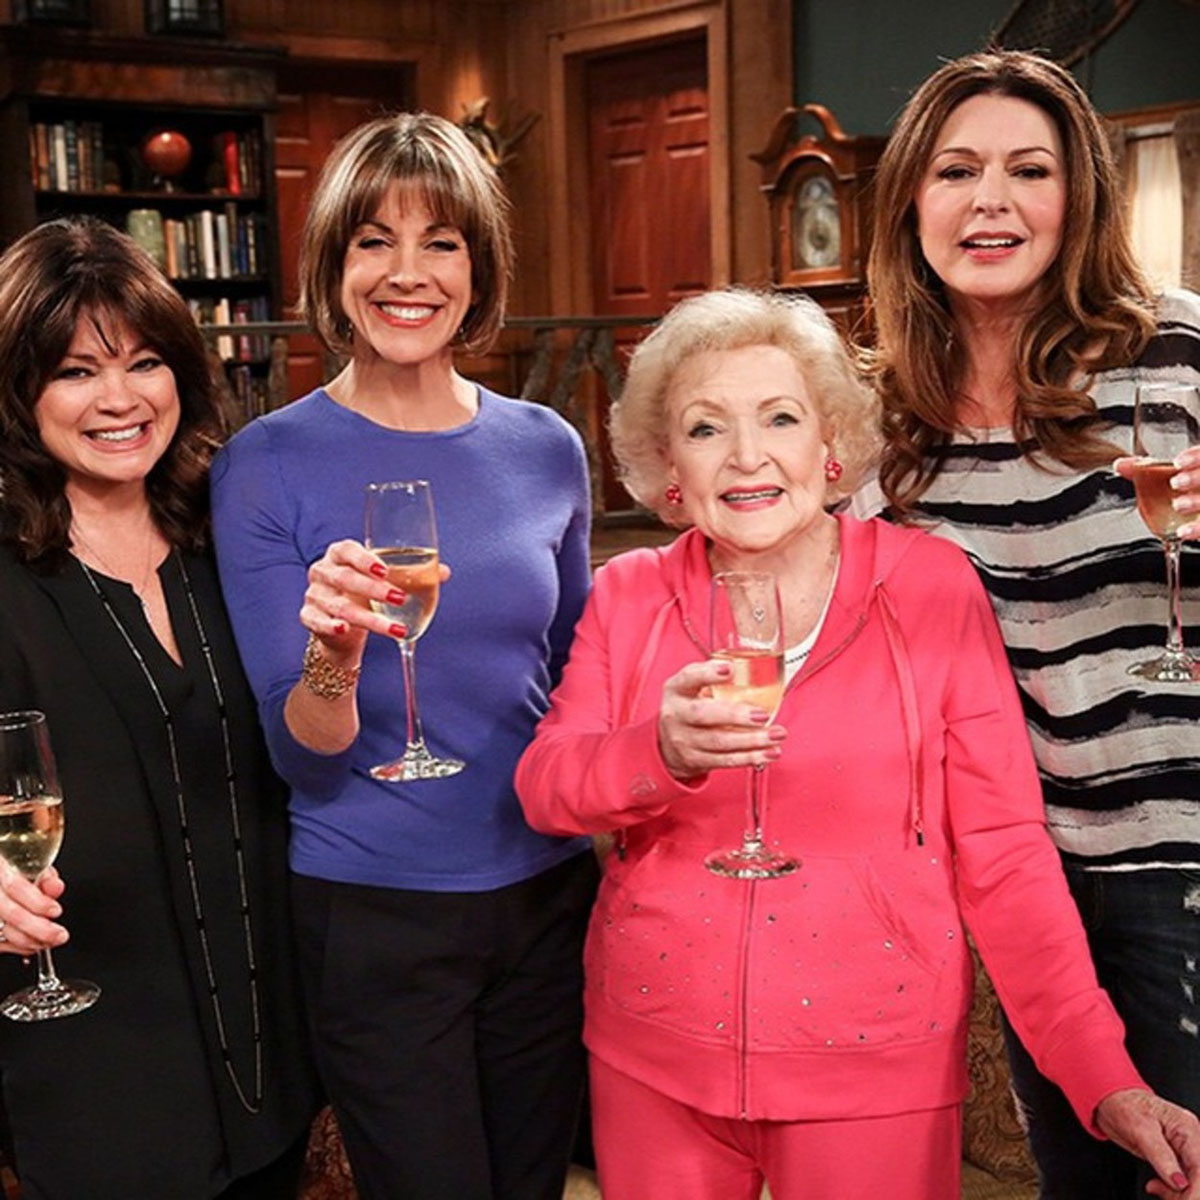 """Betty White """"For my first Instagram post I wanted  say how muh I love these girls dearly. What a great time we had. #HotFinale #ThanksForTheLaughs"""""""